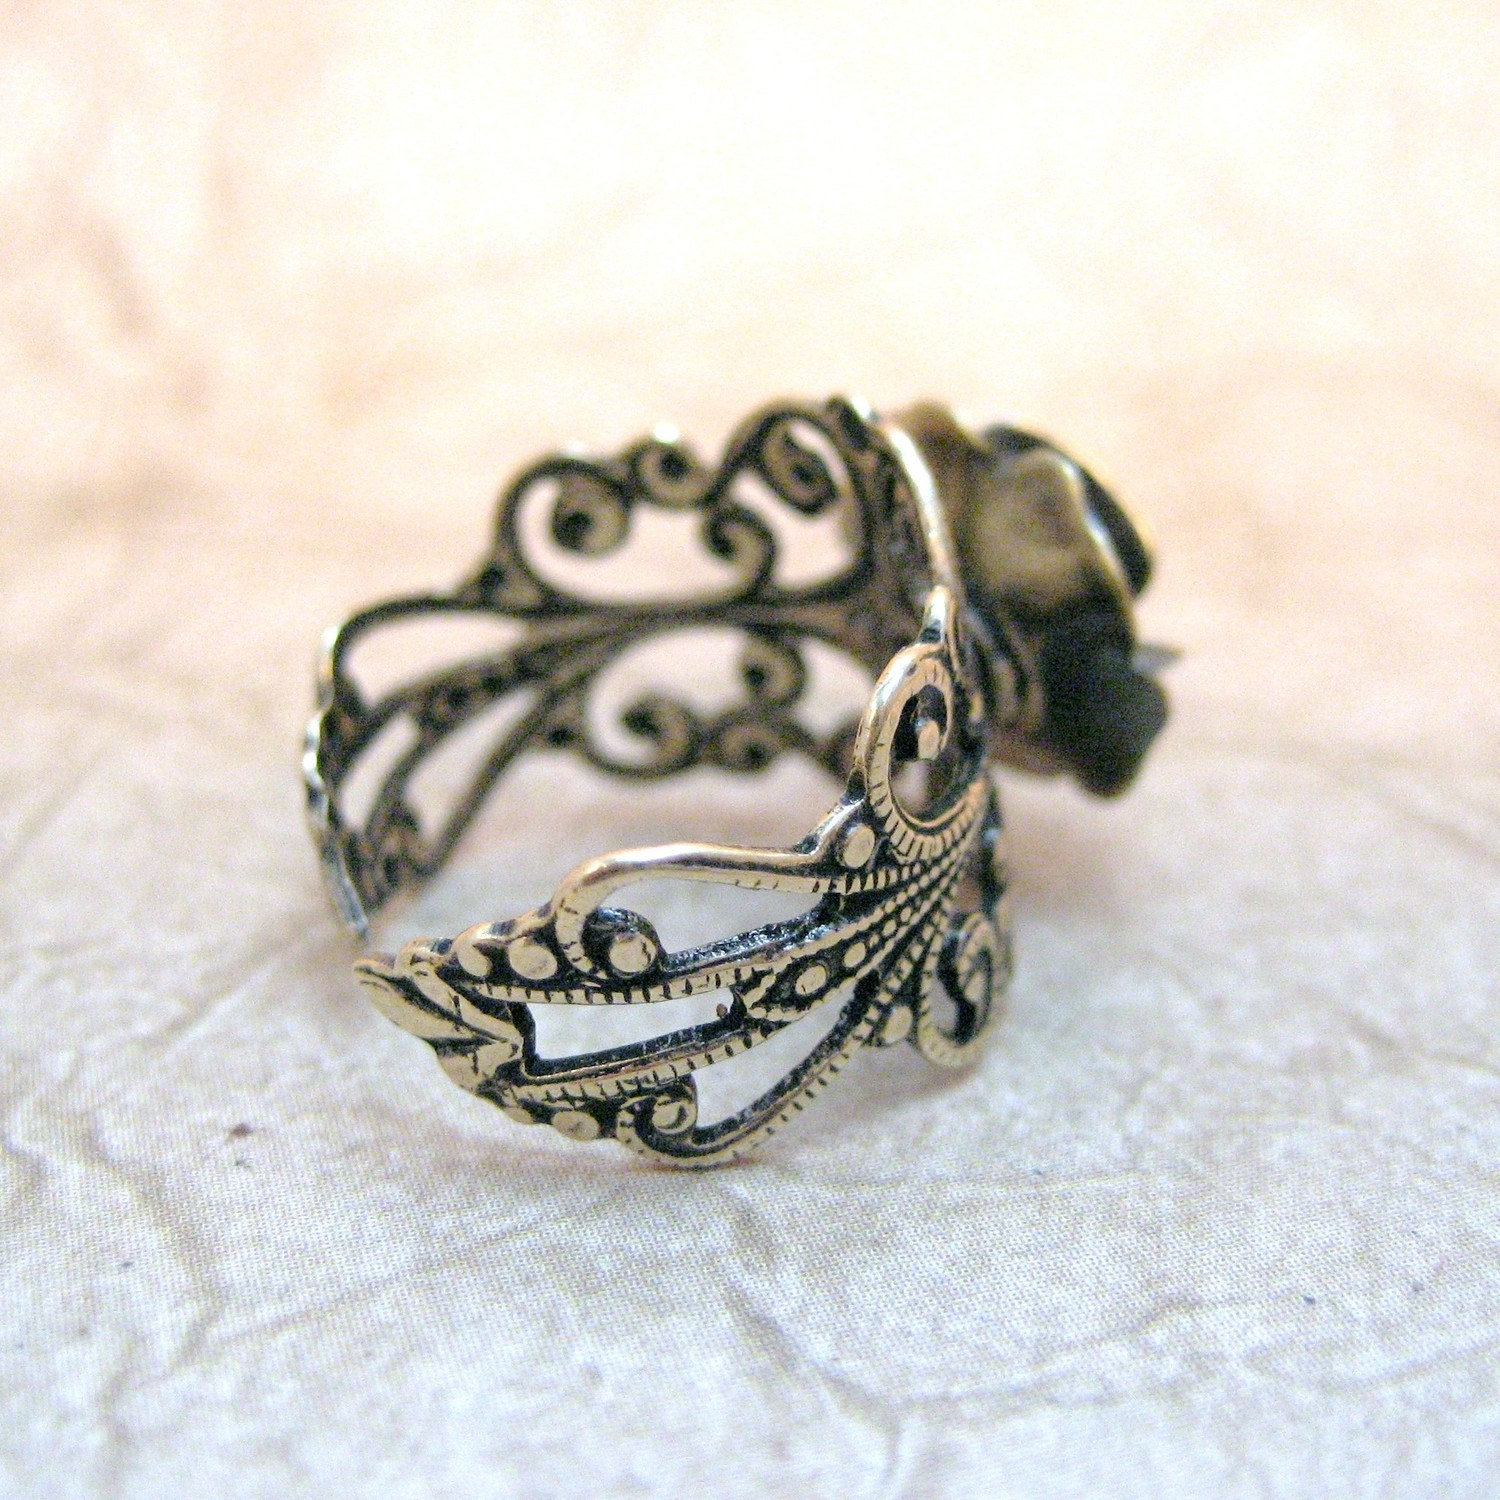 Steampunk Rose Ring - Neo Victorian Gold Tone Filigree Jewelry - Handmade and Designed by A Second Time